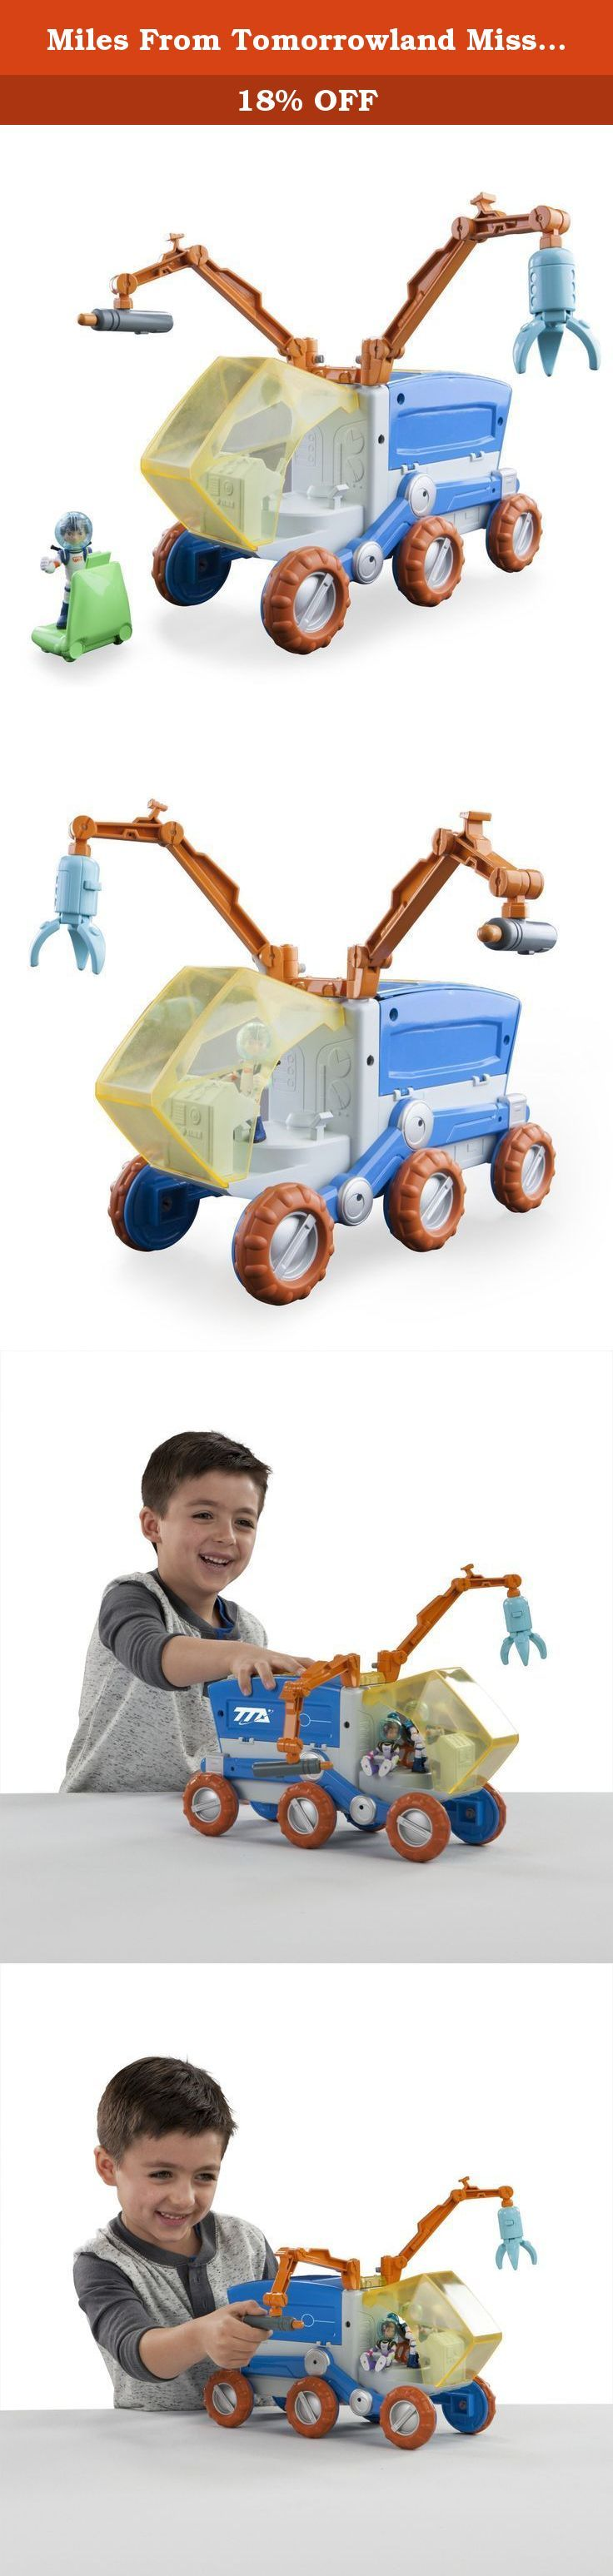 Miles From Tomorrowland Mission Rover. Miles and his friends are all part of the Cosmic Explorers who use the Mission Rover as a mobile space lab. Onces the Cosmic Explorers reach their destination they can open up the back of the Mission Rover to reveal the mobile space lab. Inside the lab, Leo can give Miles missions with the touch of a button. To help Miles complete any mission the Rover has 2 Robotic Arms that can be moved to different locations on the vehicle to blast away obstacles...